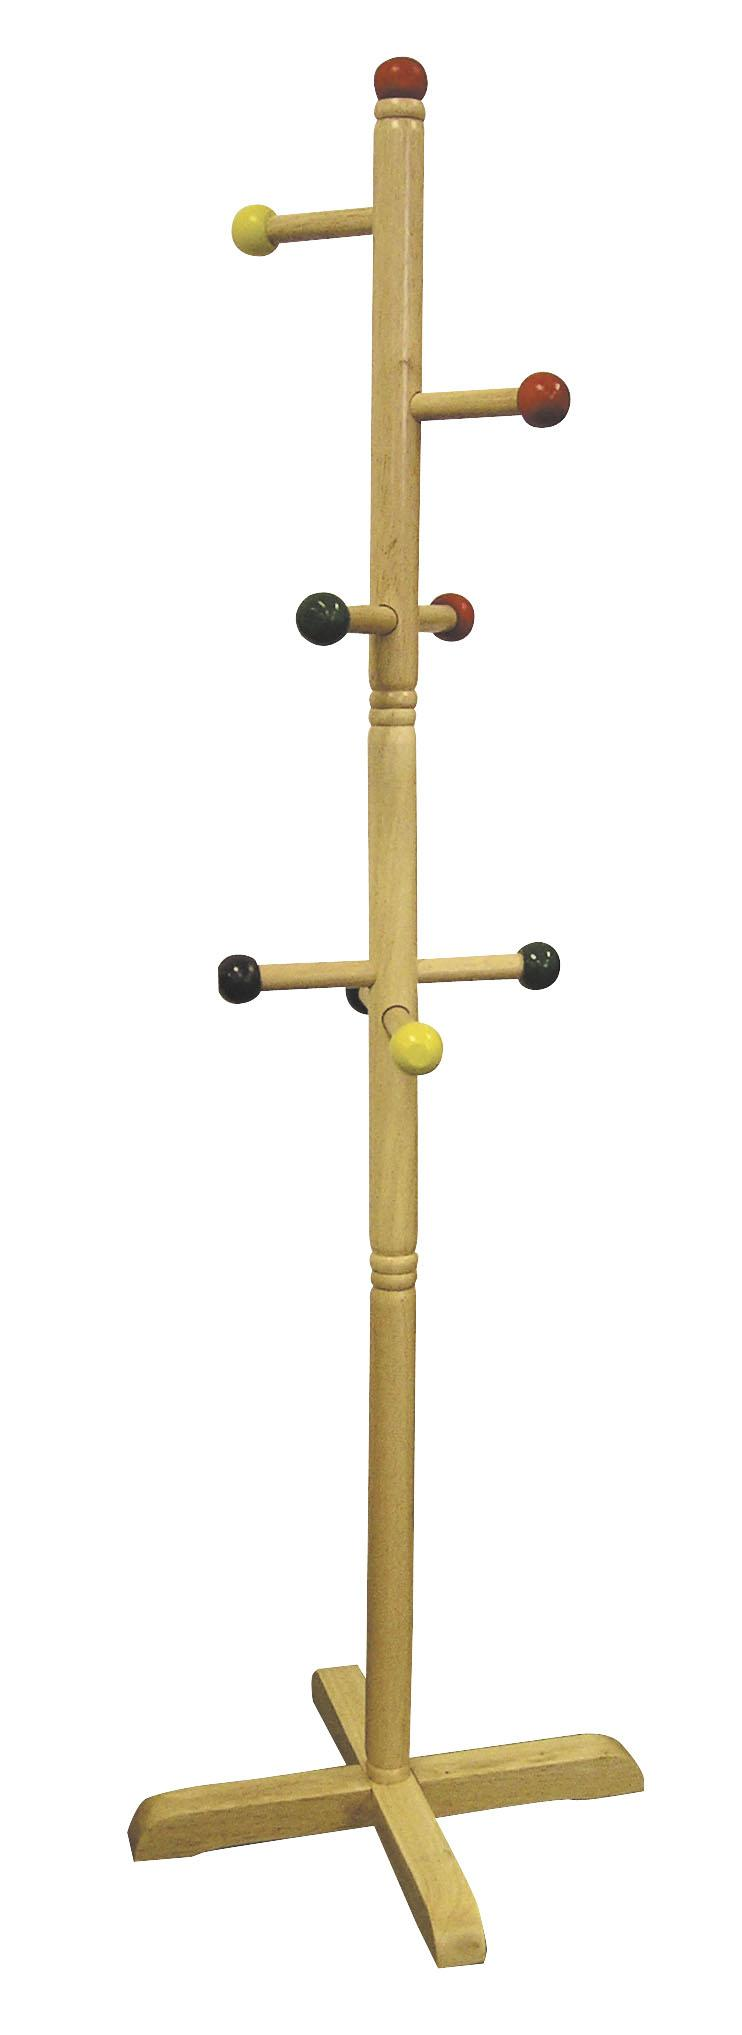 ORE International Kids Peg Coat Rack by OJ Commerce JW-101 - $40.99